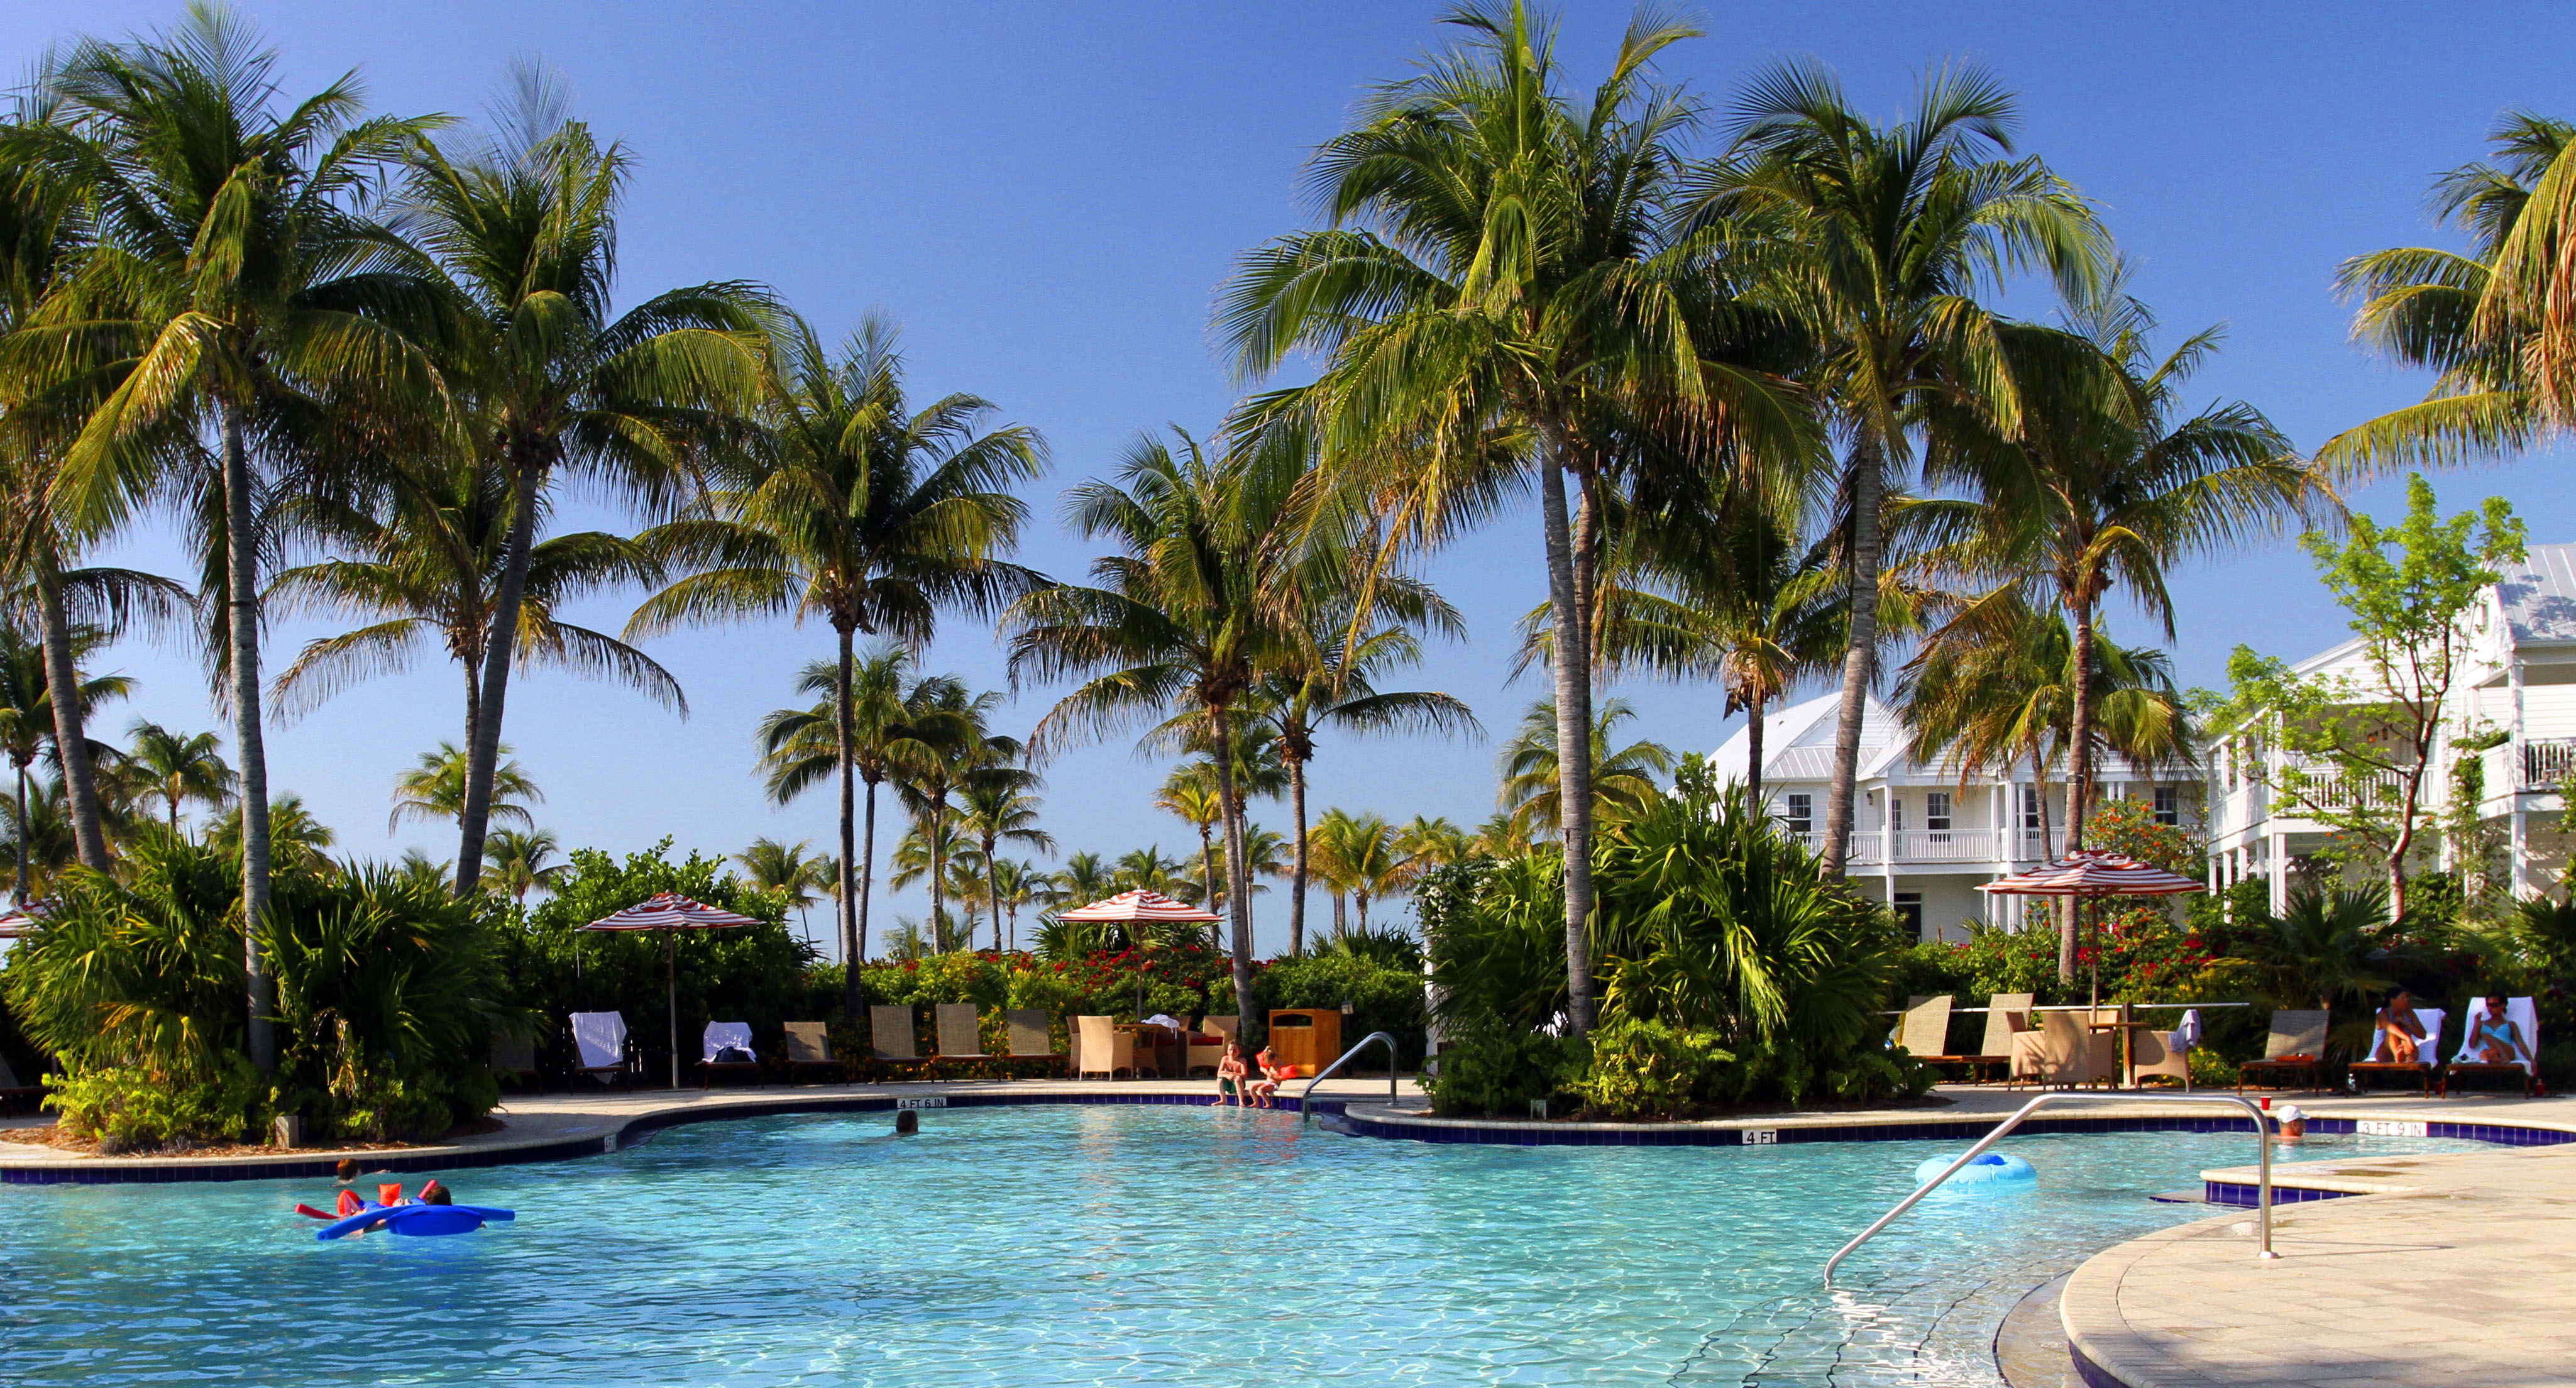 Florida Keys Resorts On The Beach All Inclusive The Best